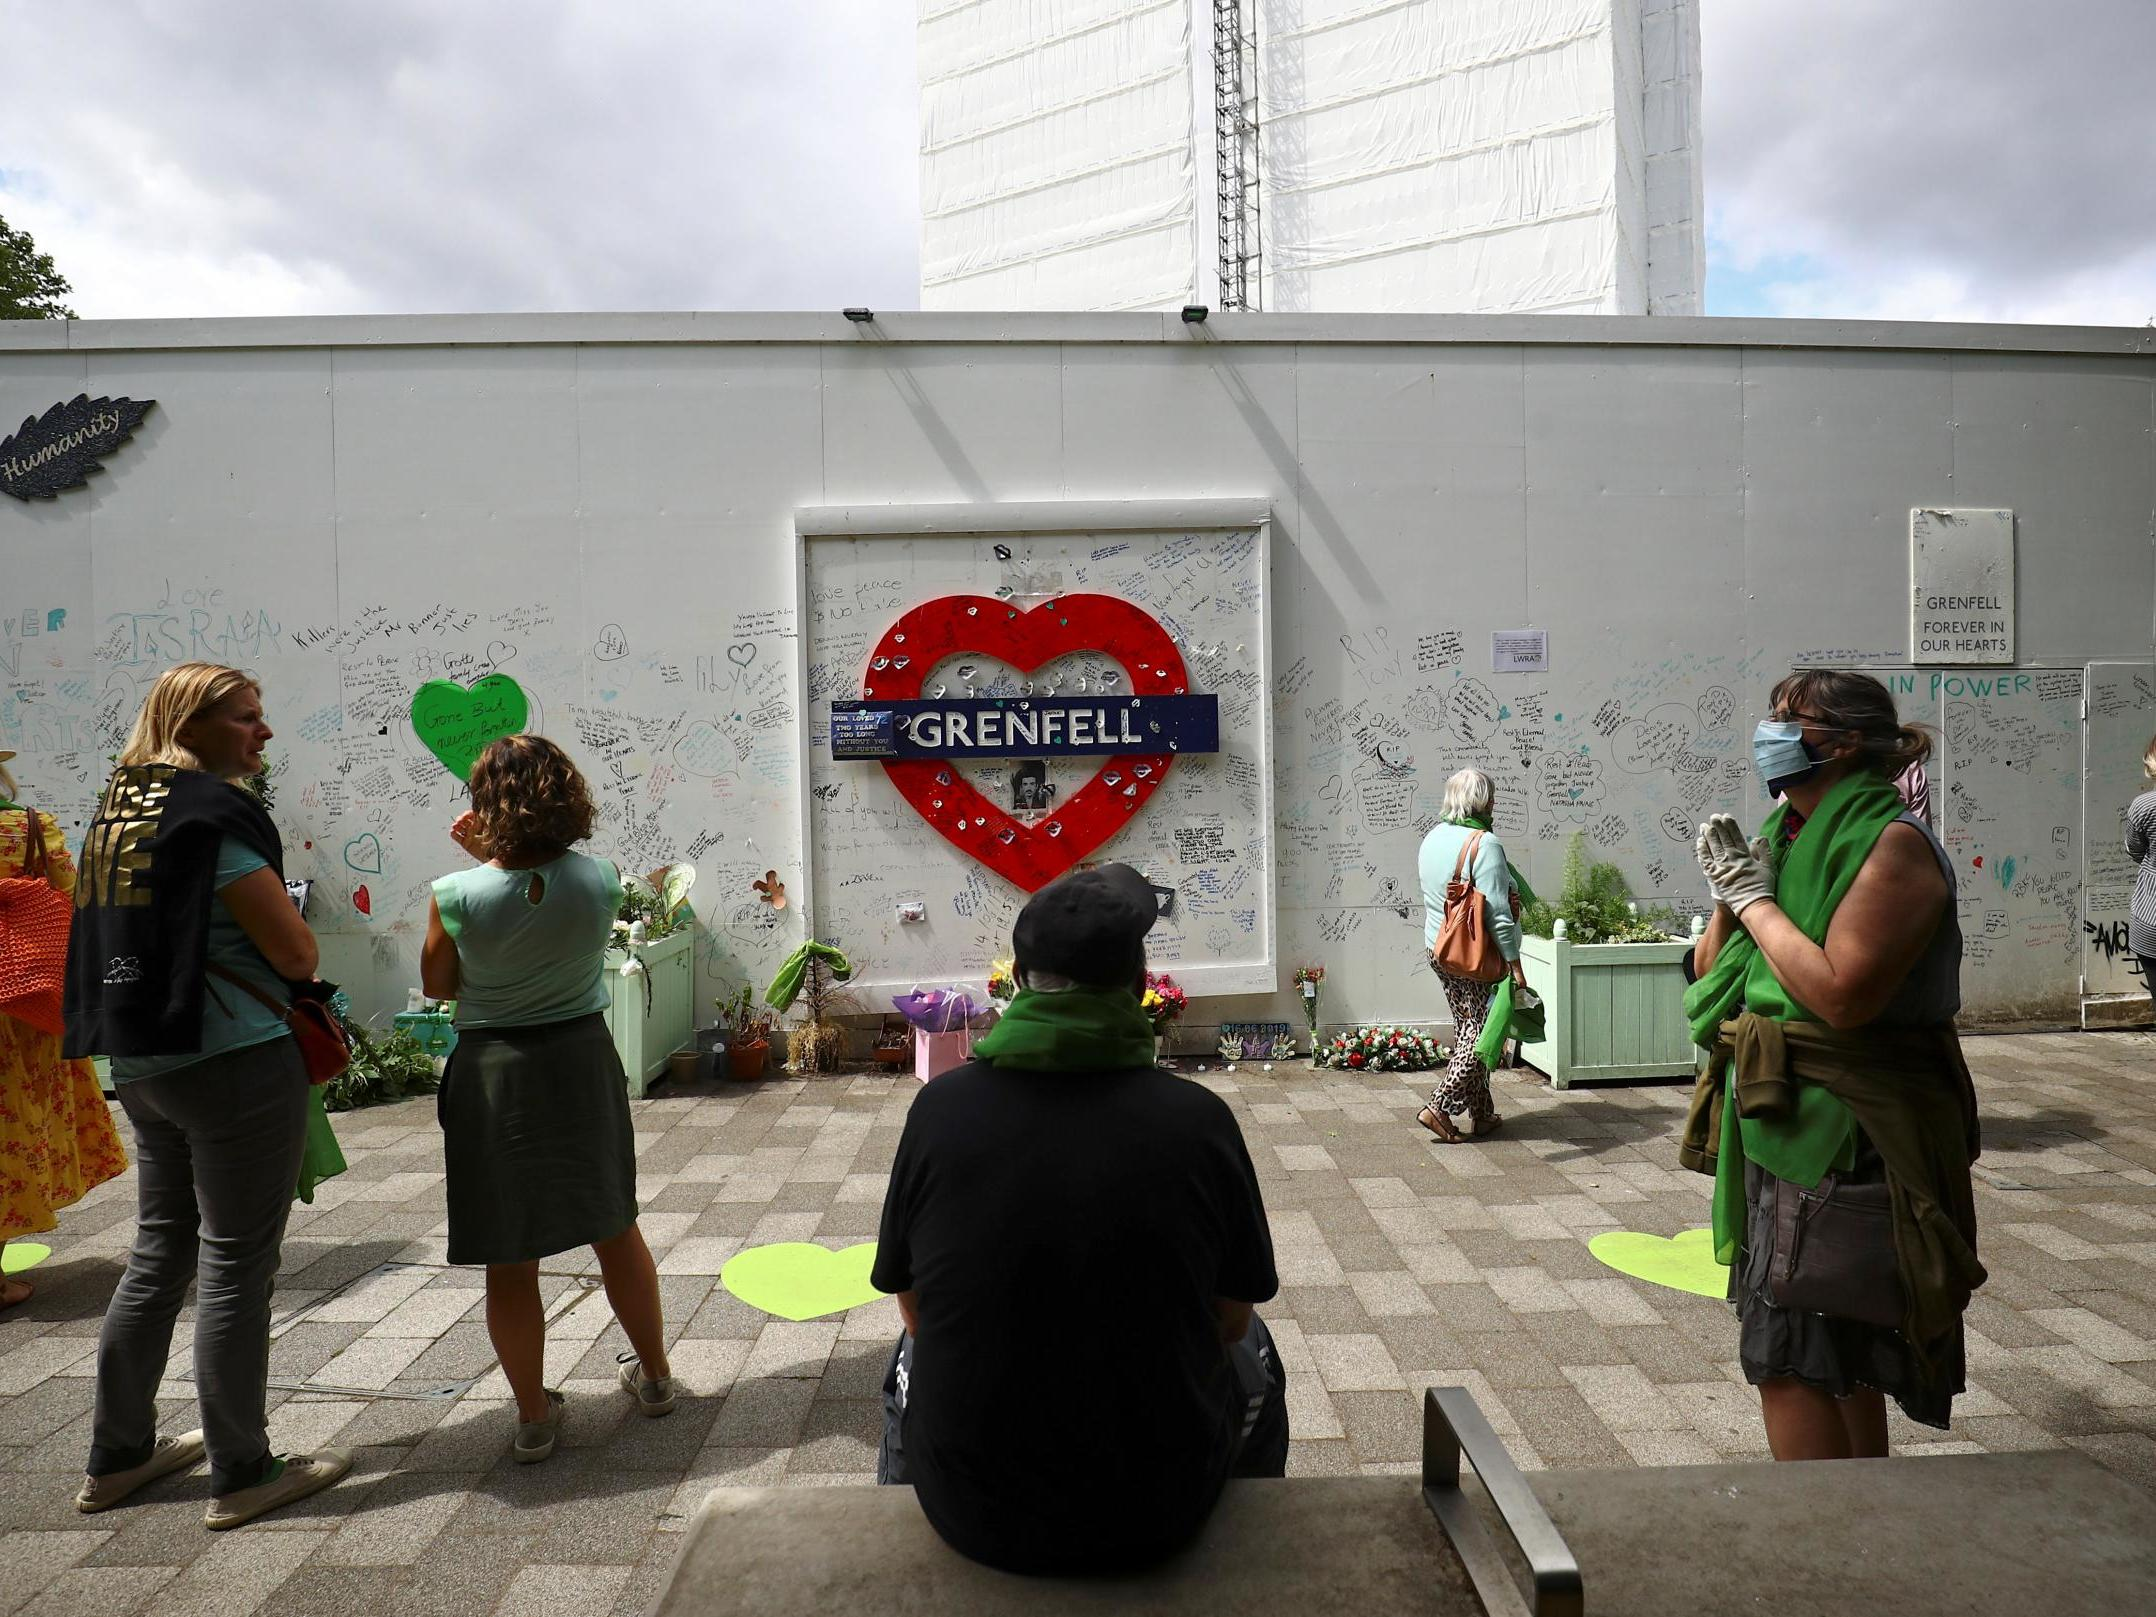 Grenfell fire three years on: Boris Johnson and Keir Starmer pay tribute as virtual service held to remember victims thumbnail